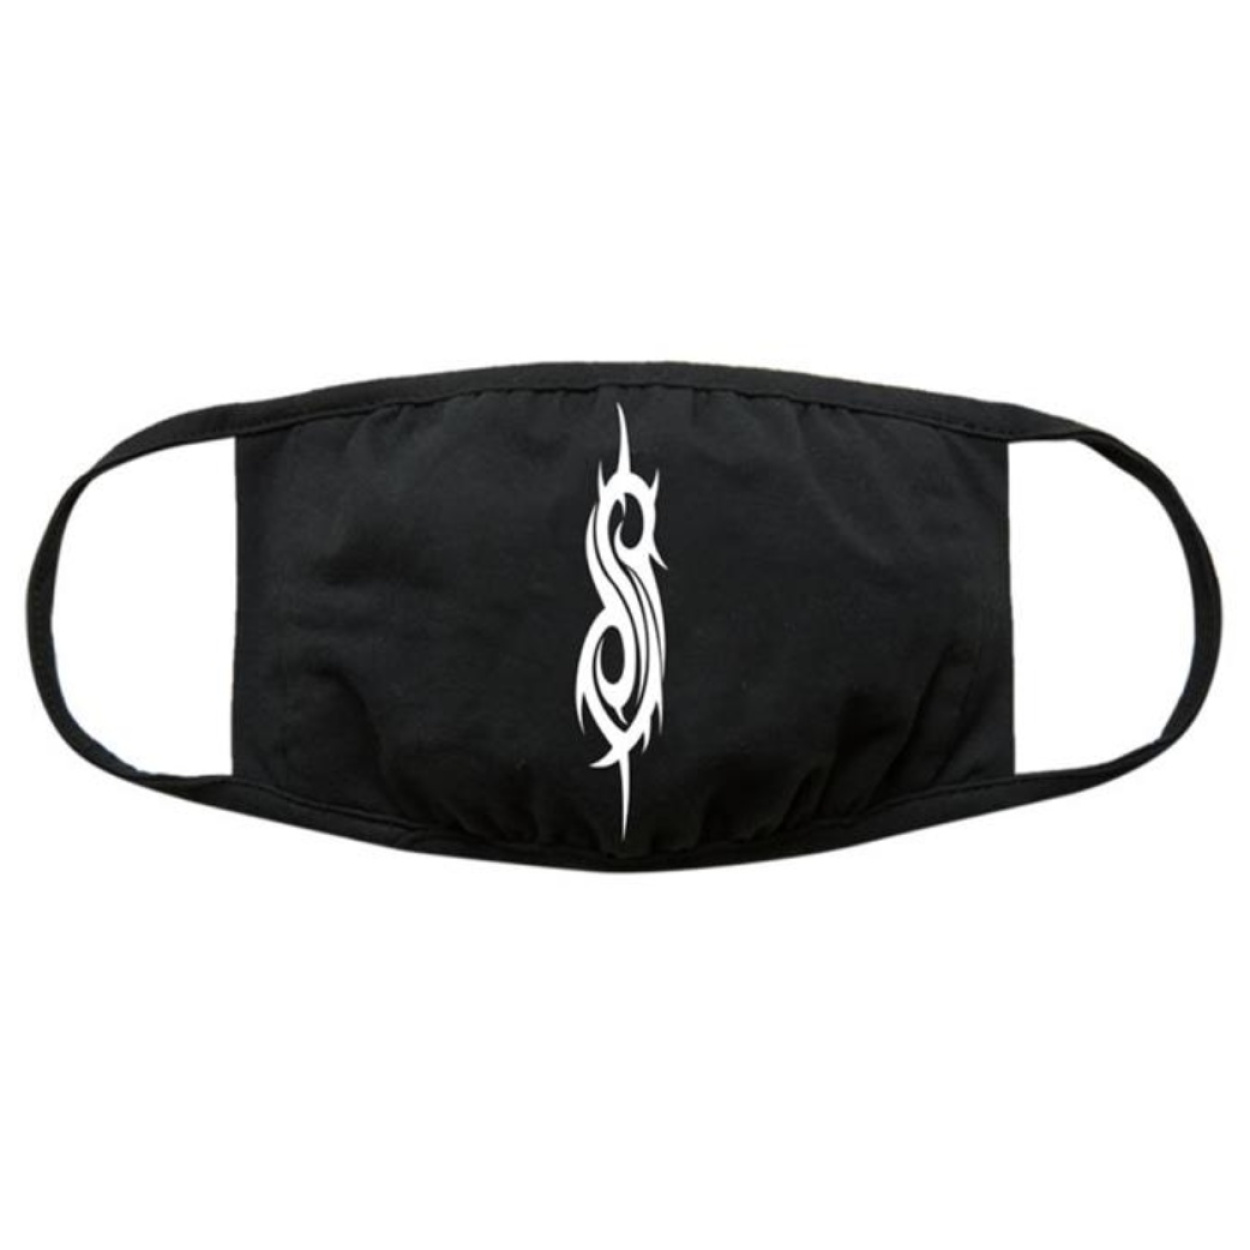 Slipknot S Logo Face covering available at Penarth Music Centre